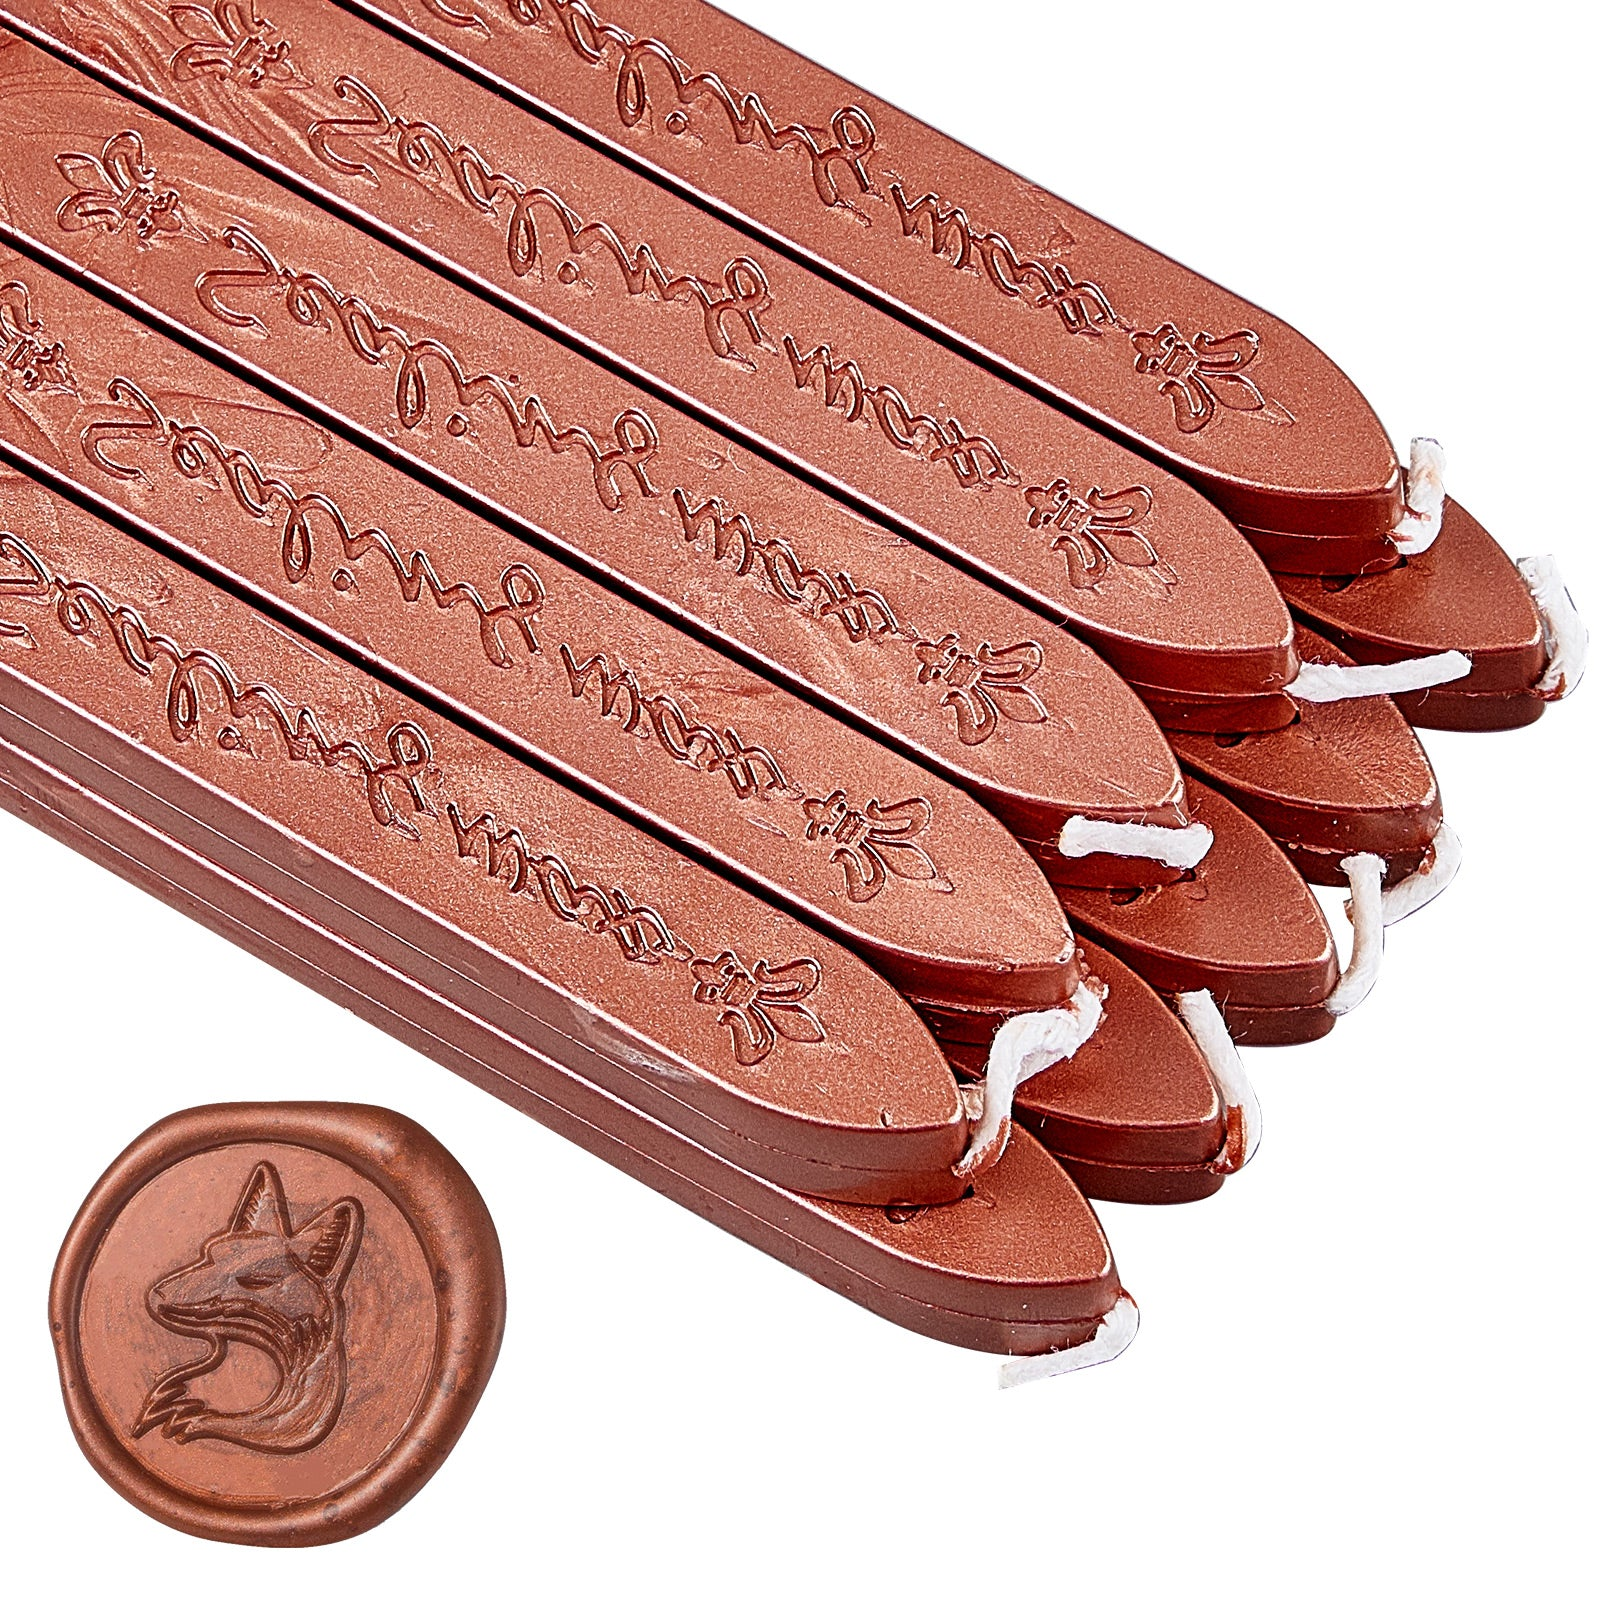 20 Pieces Sealing Wax Sticks with Wicks(Gold Copper)